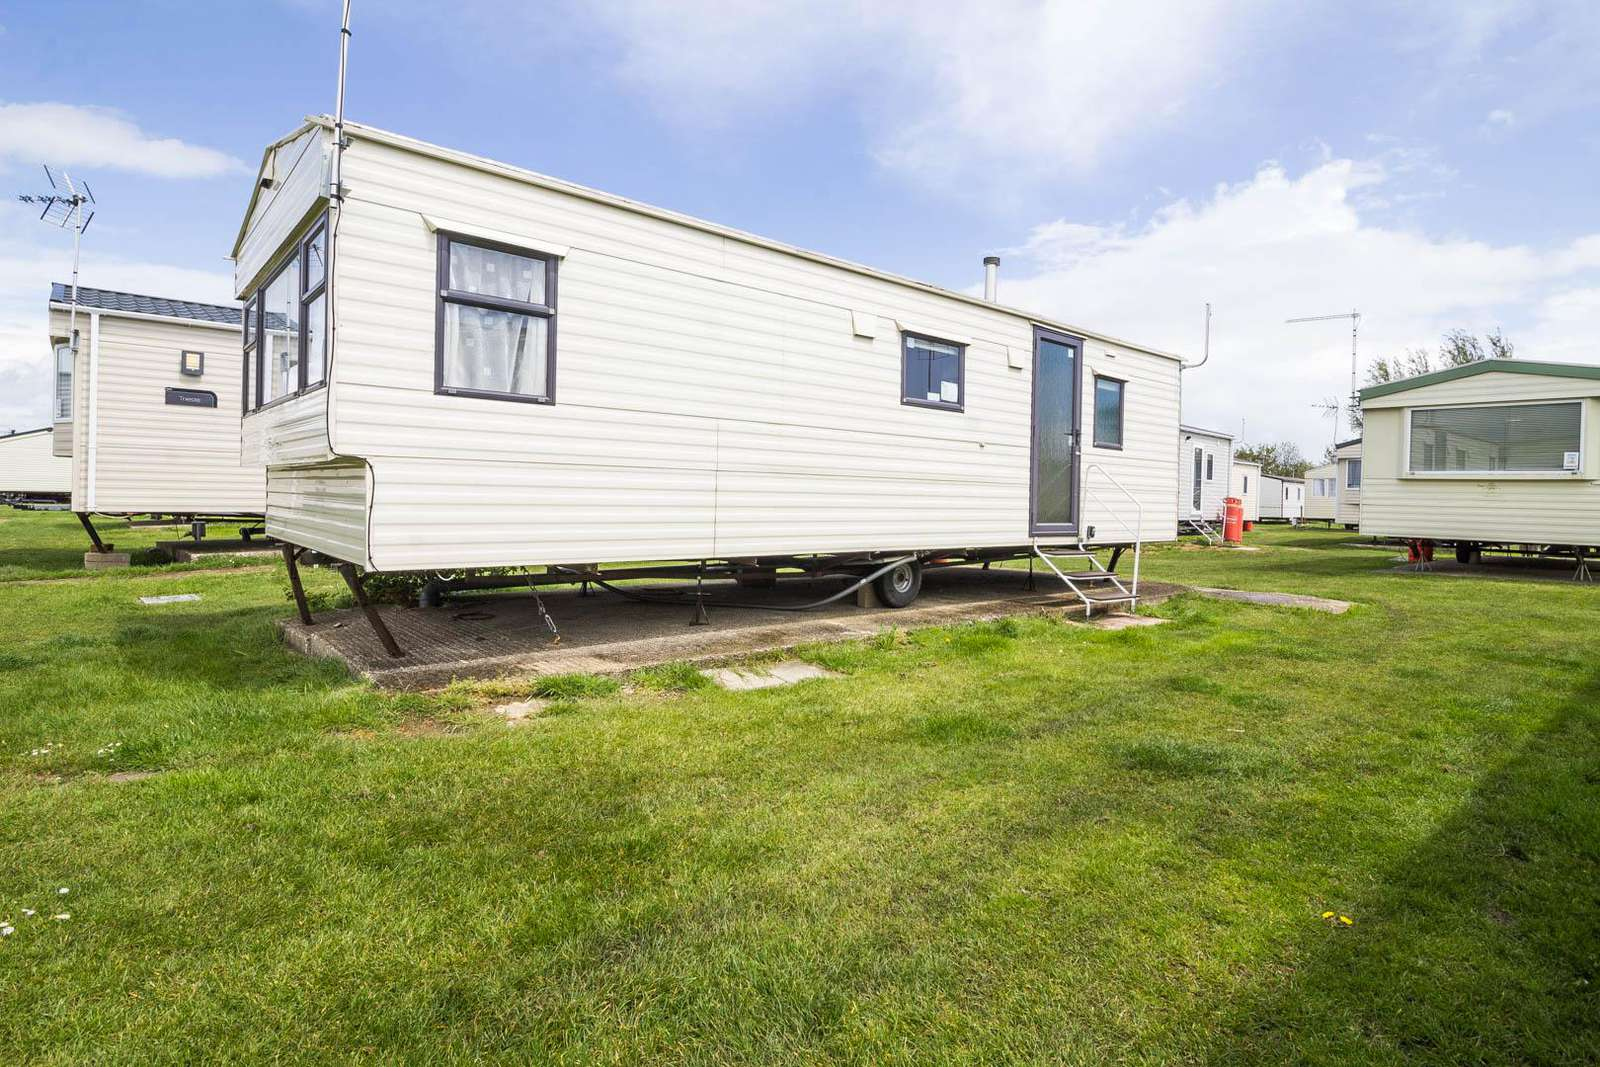 29019G – G area, 2 bed, 6 berth caravan. Sapphire rated. - property